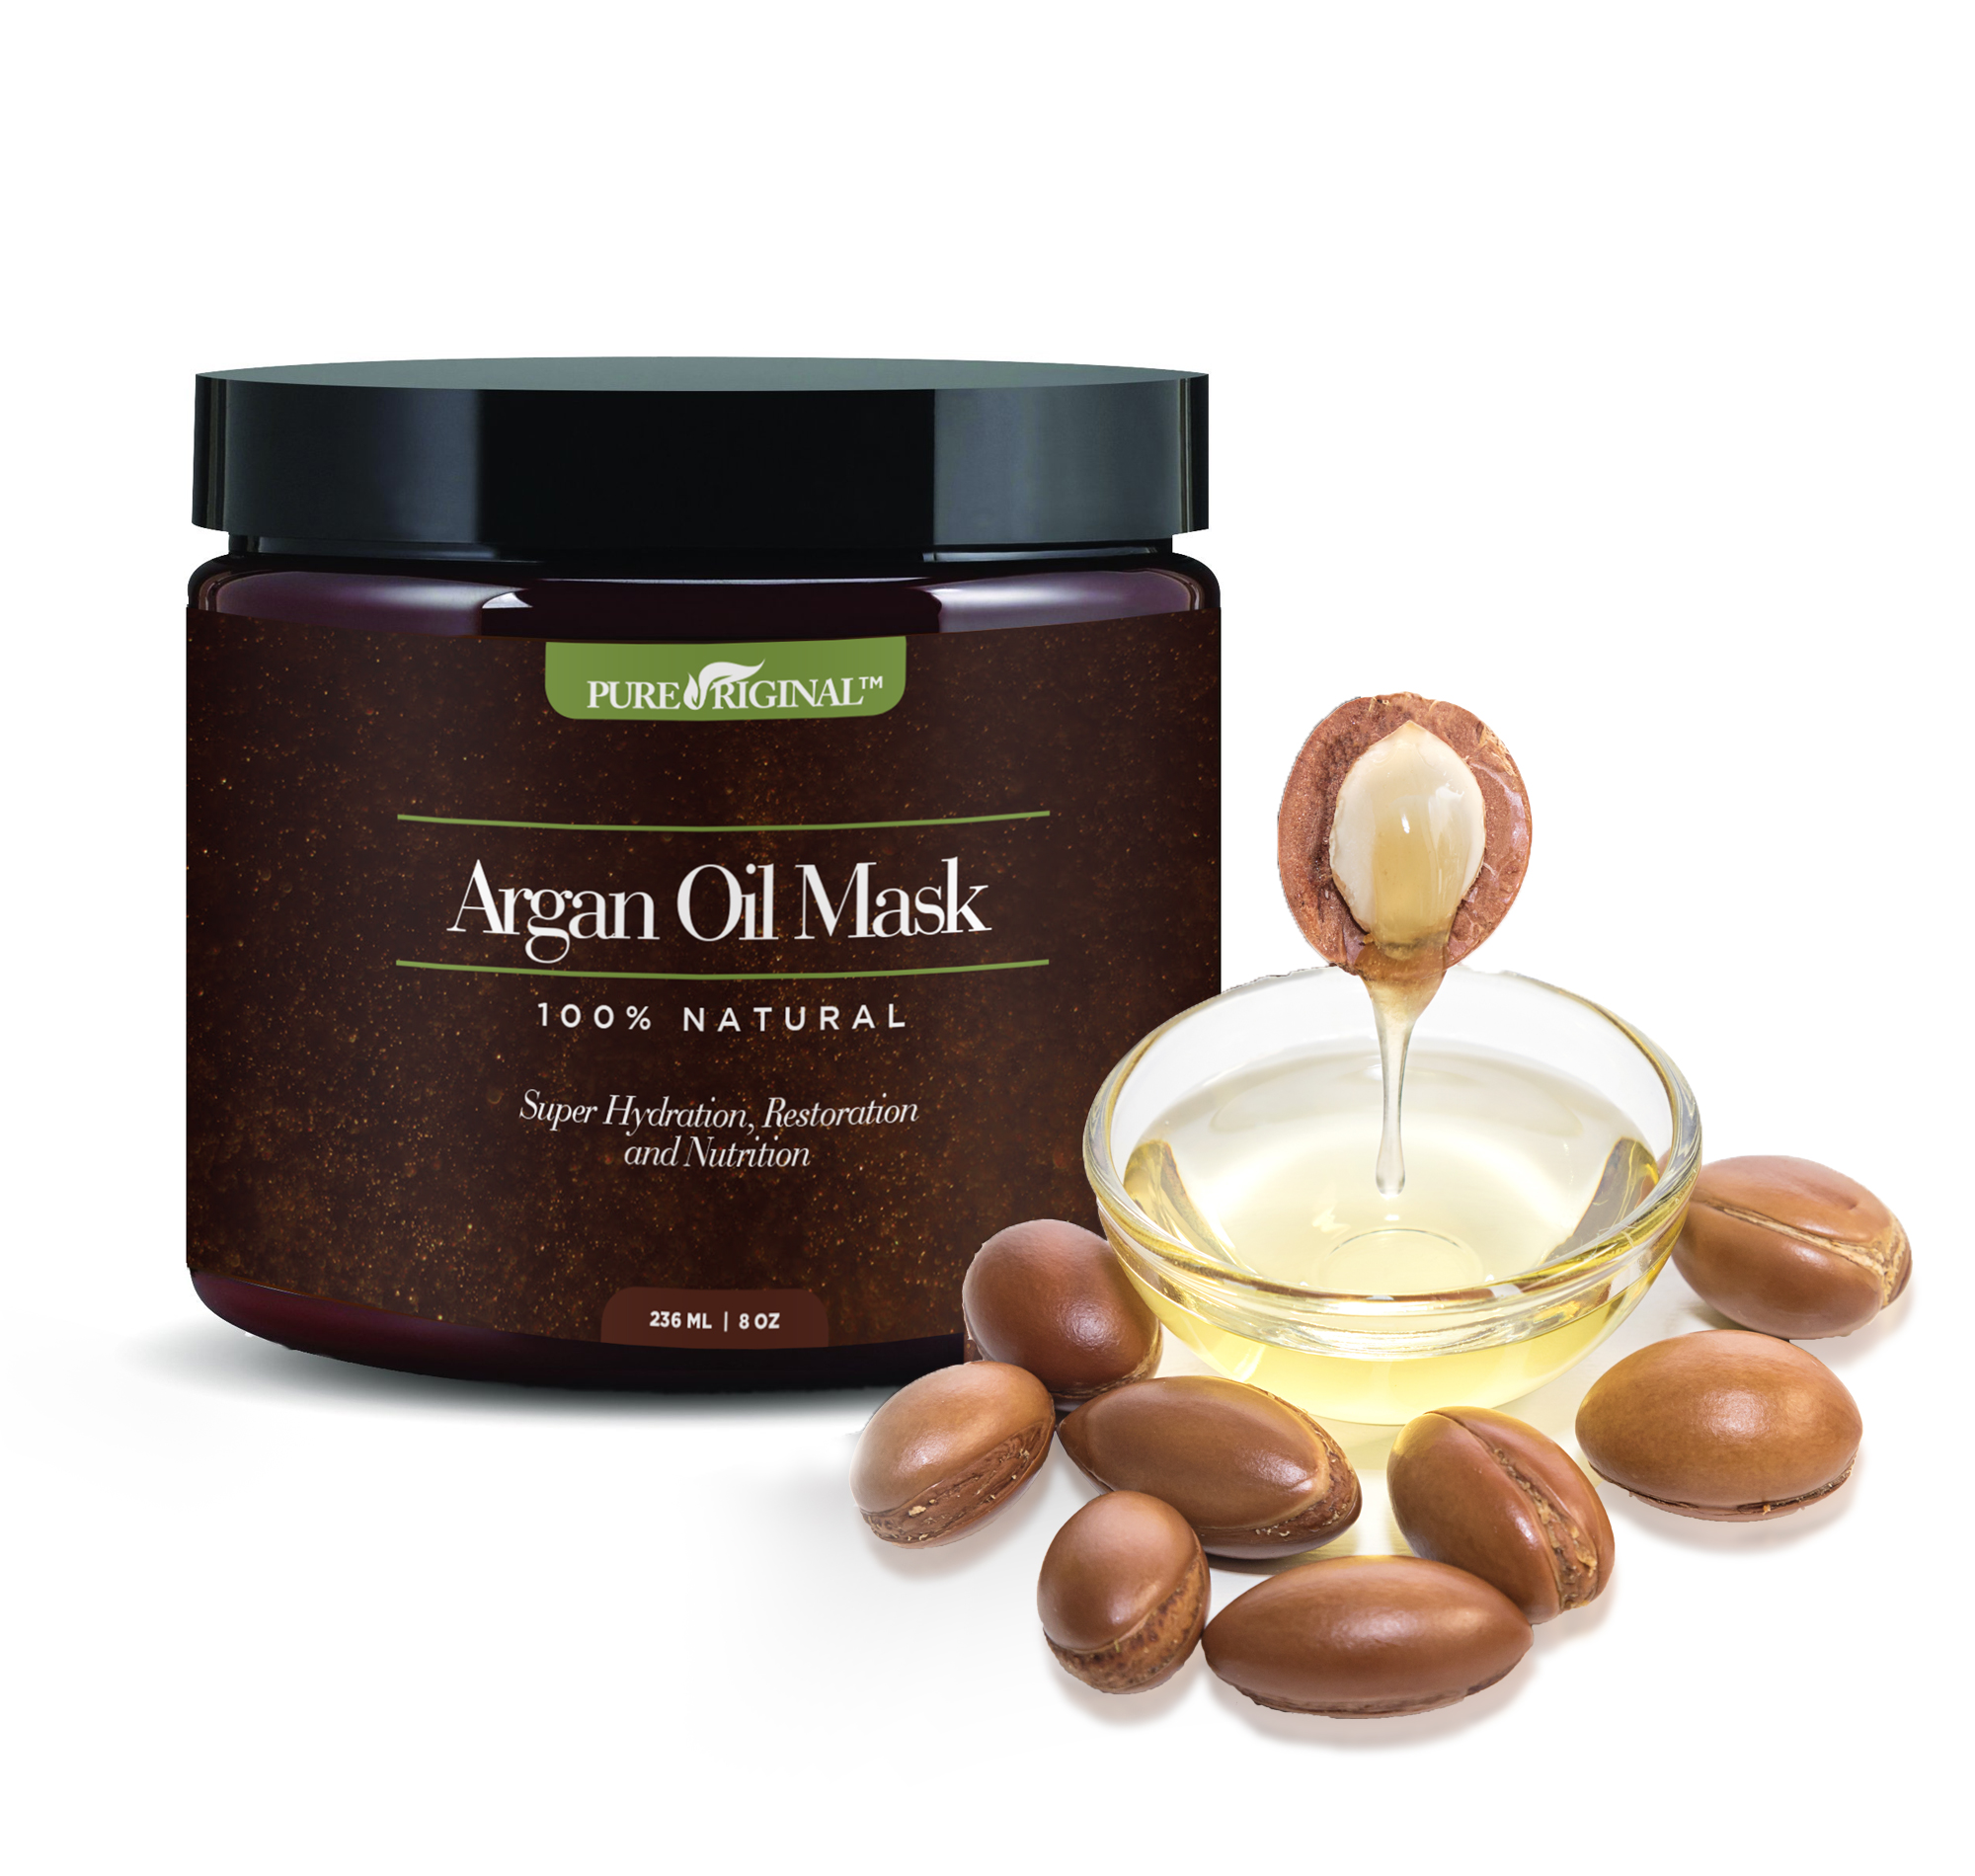 Argan Oil Mask Back